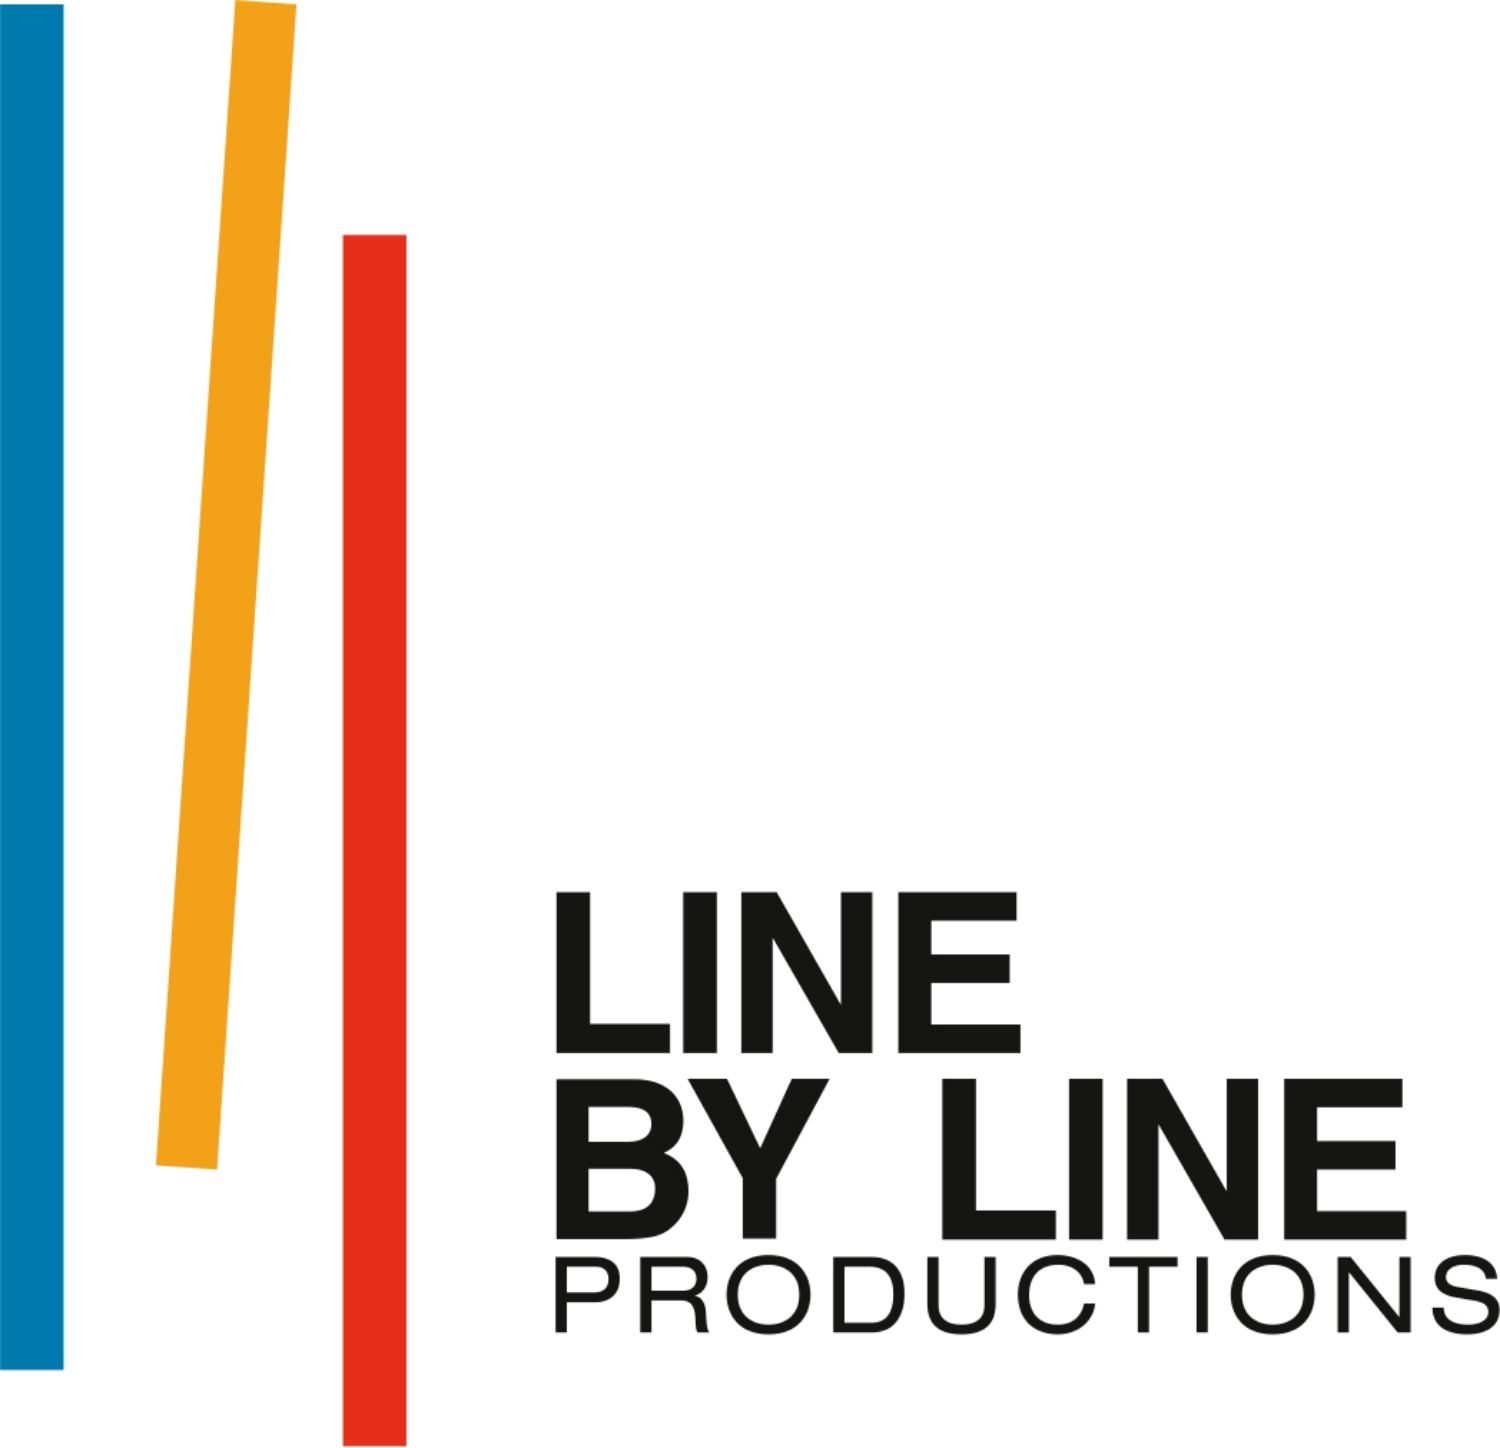 Line By Line Productions